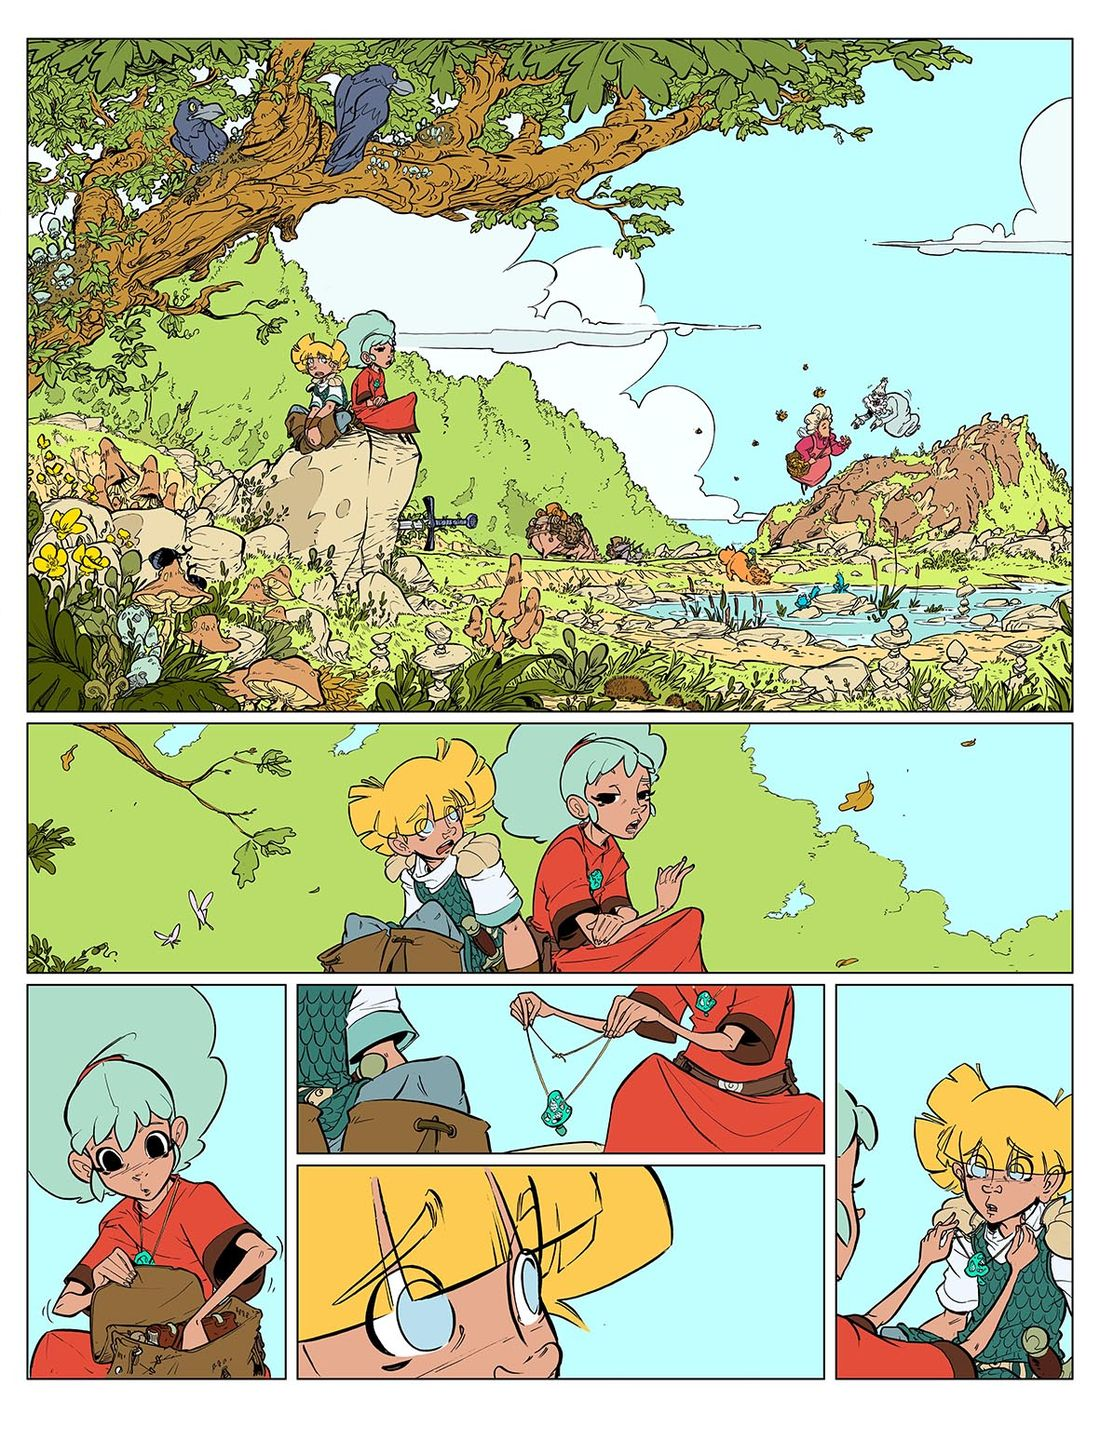 la planche 1 du tome 3 d'Alianor Mandragore, step by step © Labourot / Gauthier